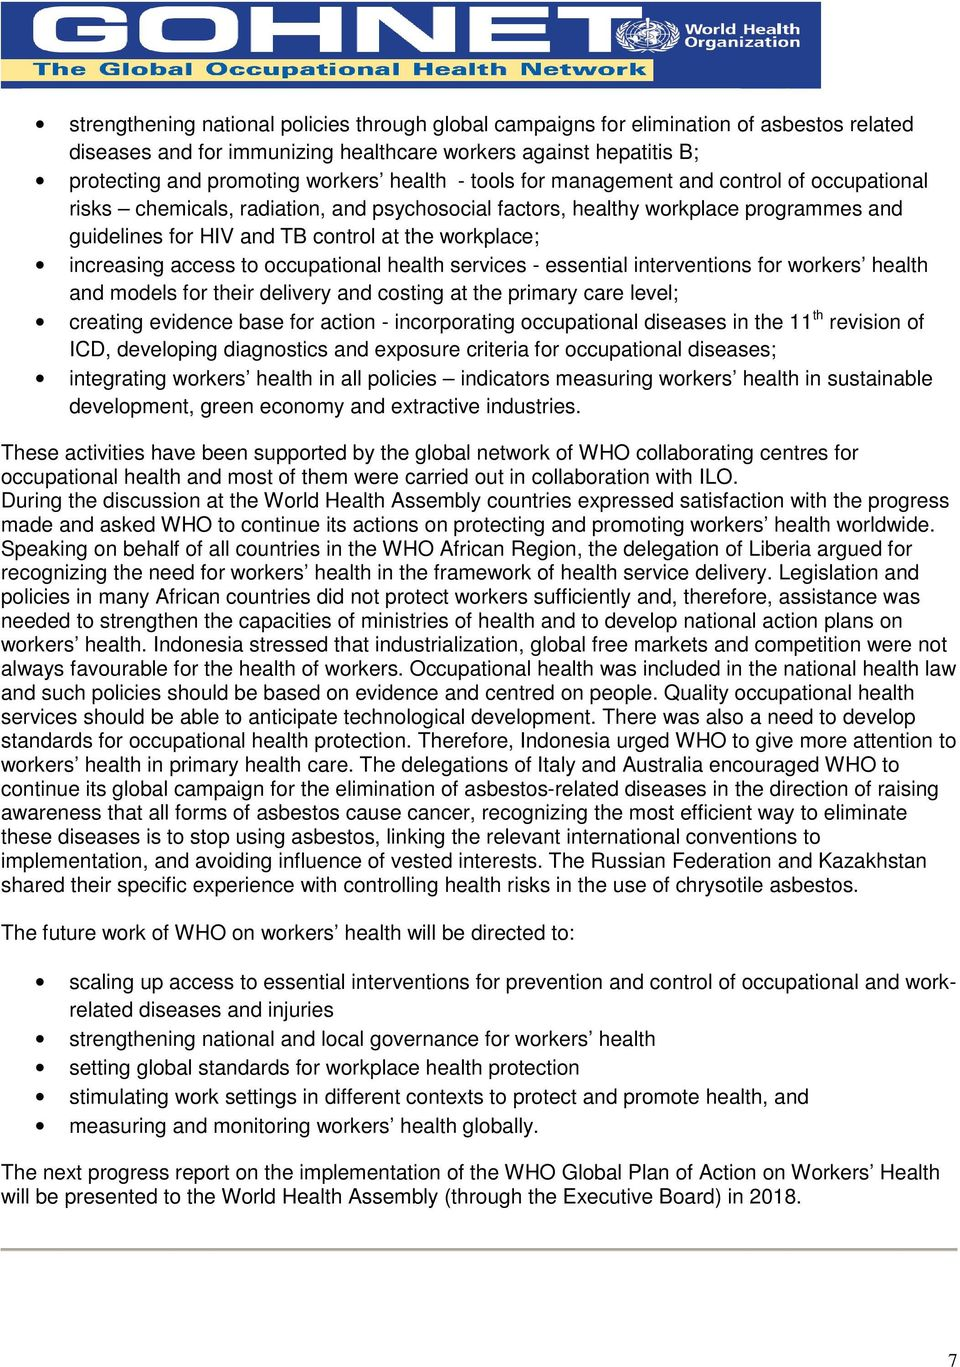 increasing access to occupational health services - essential interventions for workers health and models for their delivery and costing at the primary care level; creating evidence base for action -